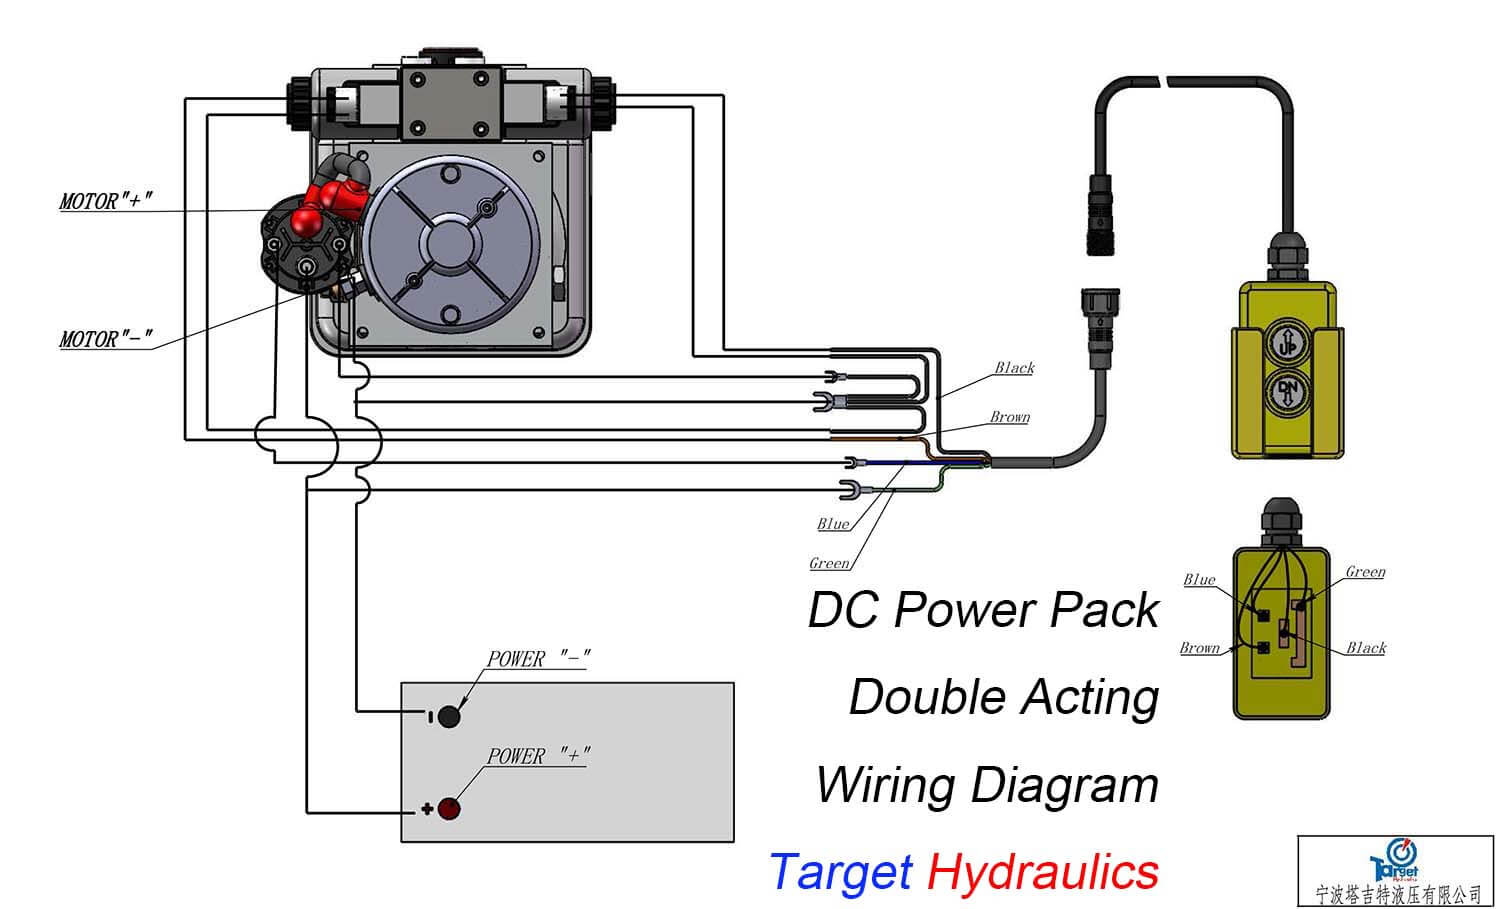 How to Wire_DC Motor Double Acting Power Pack how to wire hydraulic power pack,power unit diagram design 110 Power Cord Diagram at fashall.co